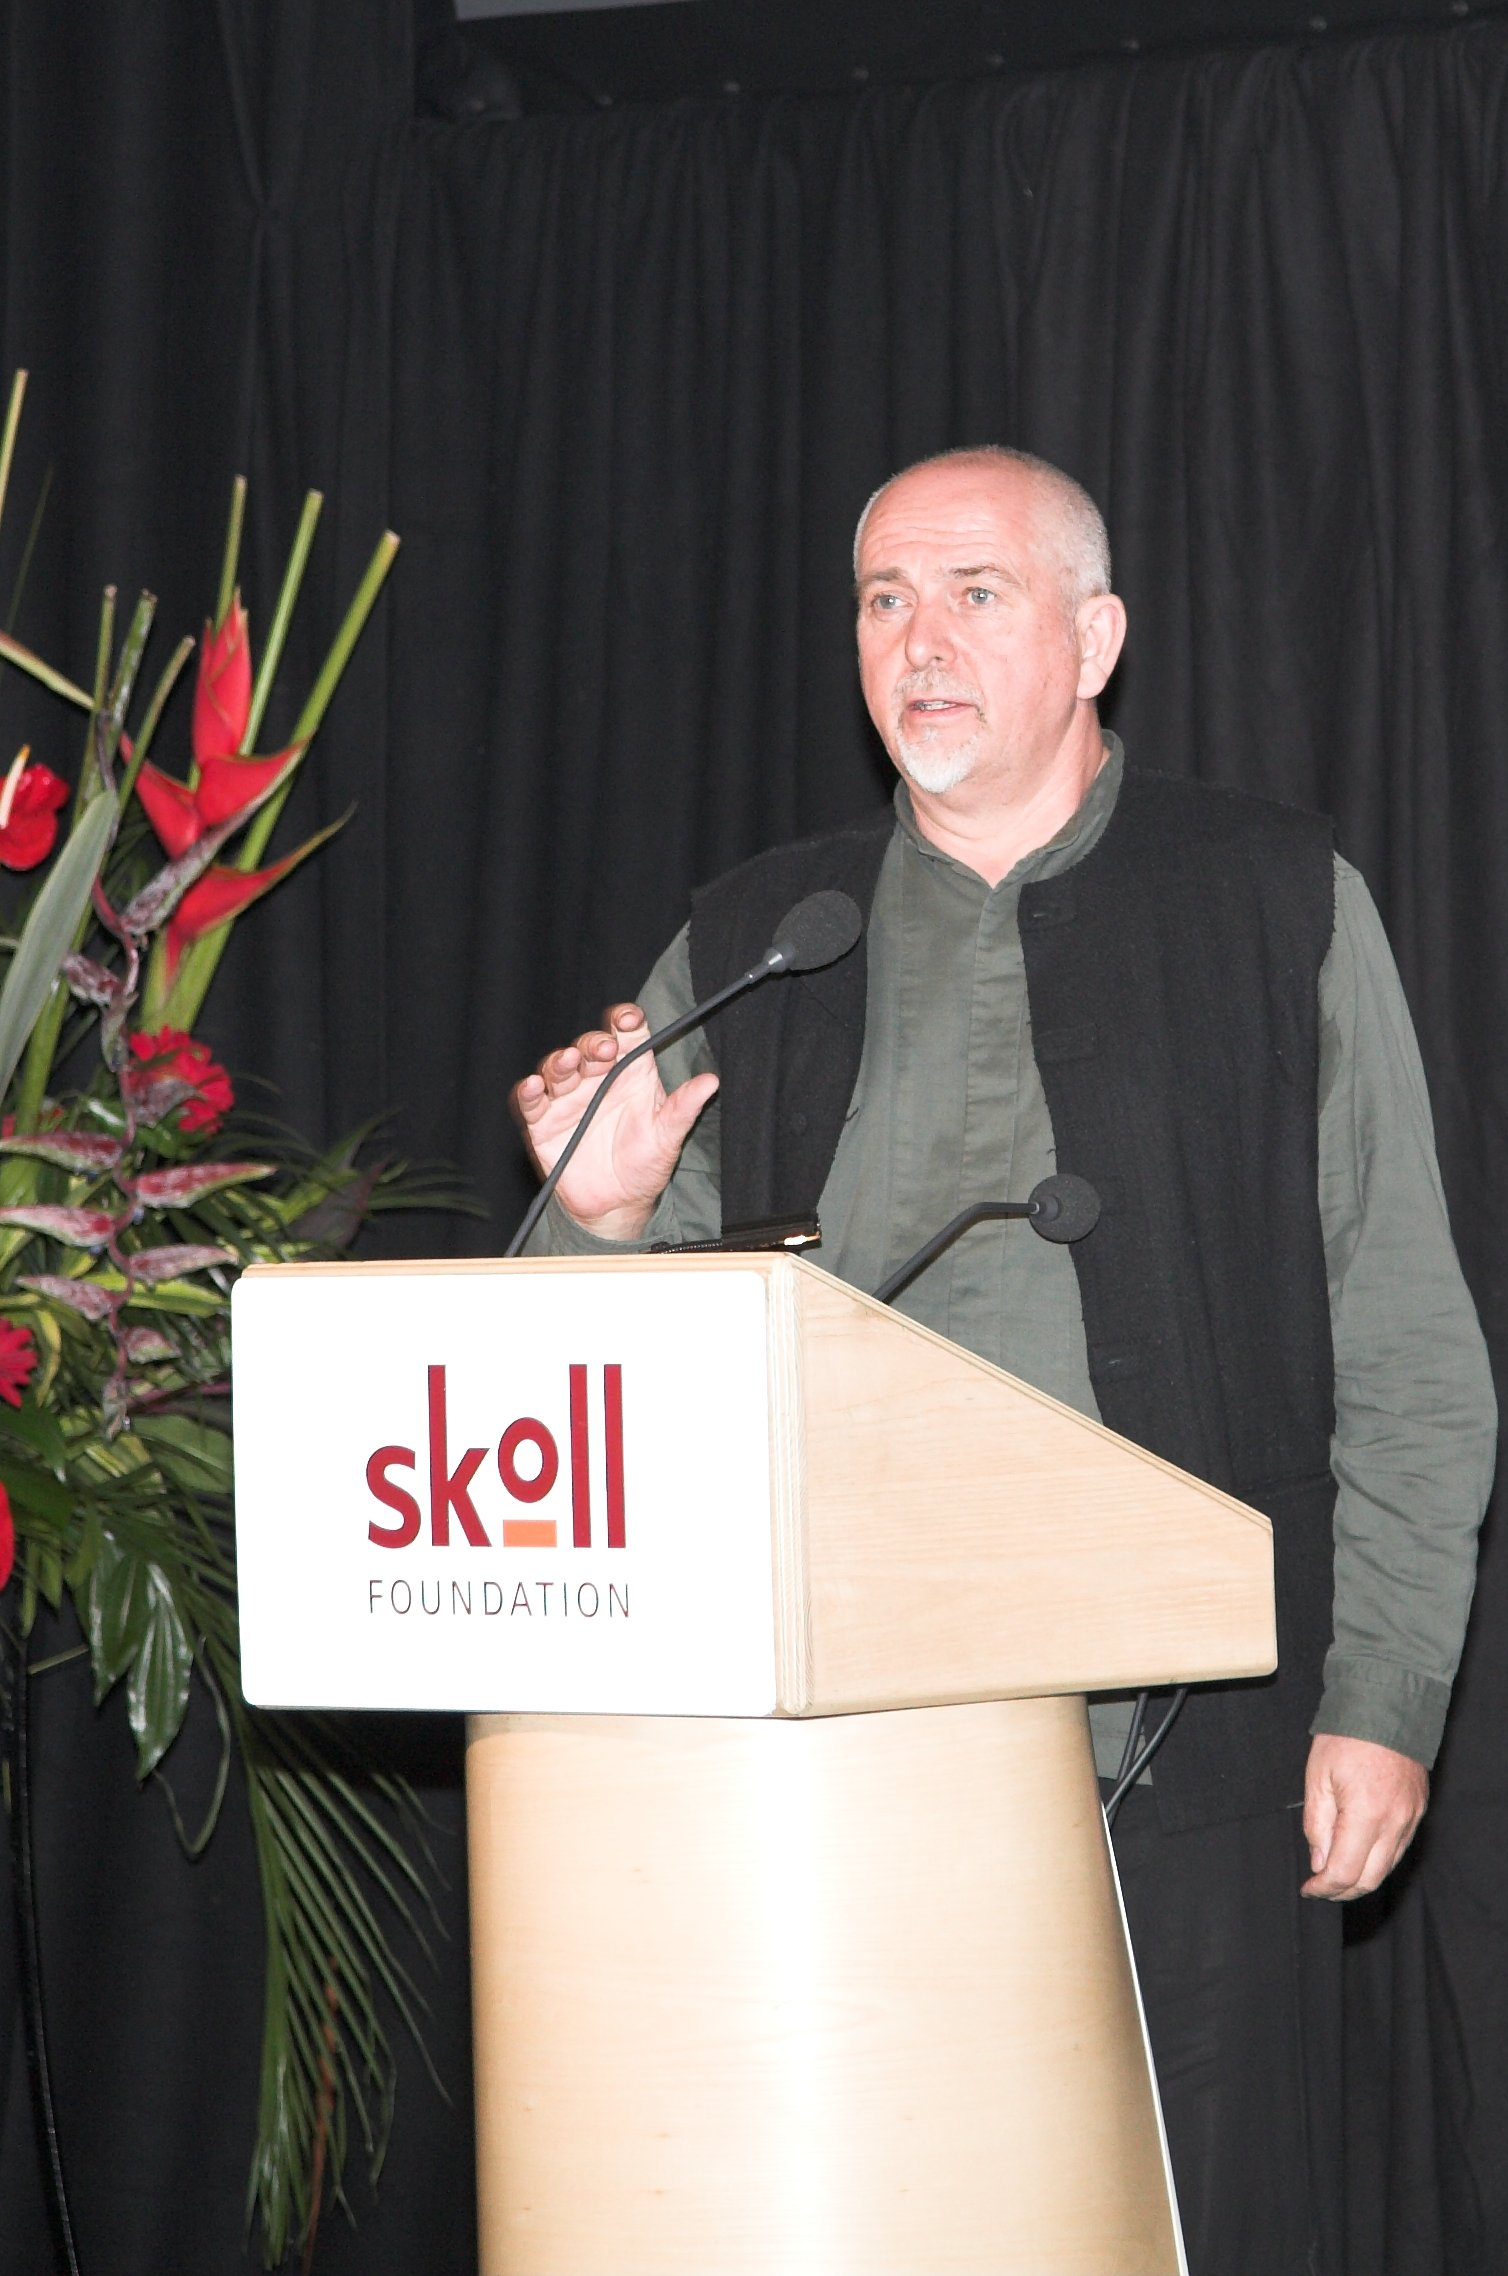 peter gabriel at skoll awards